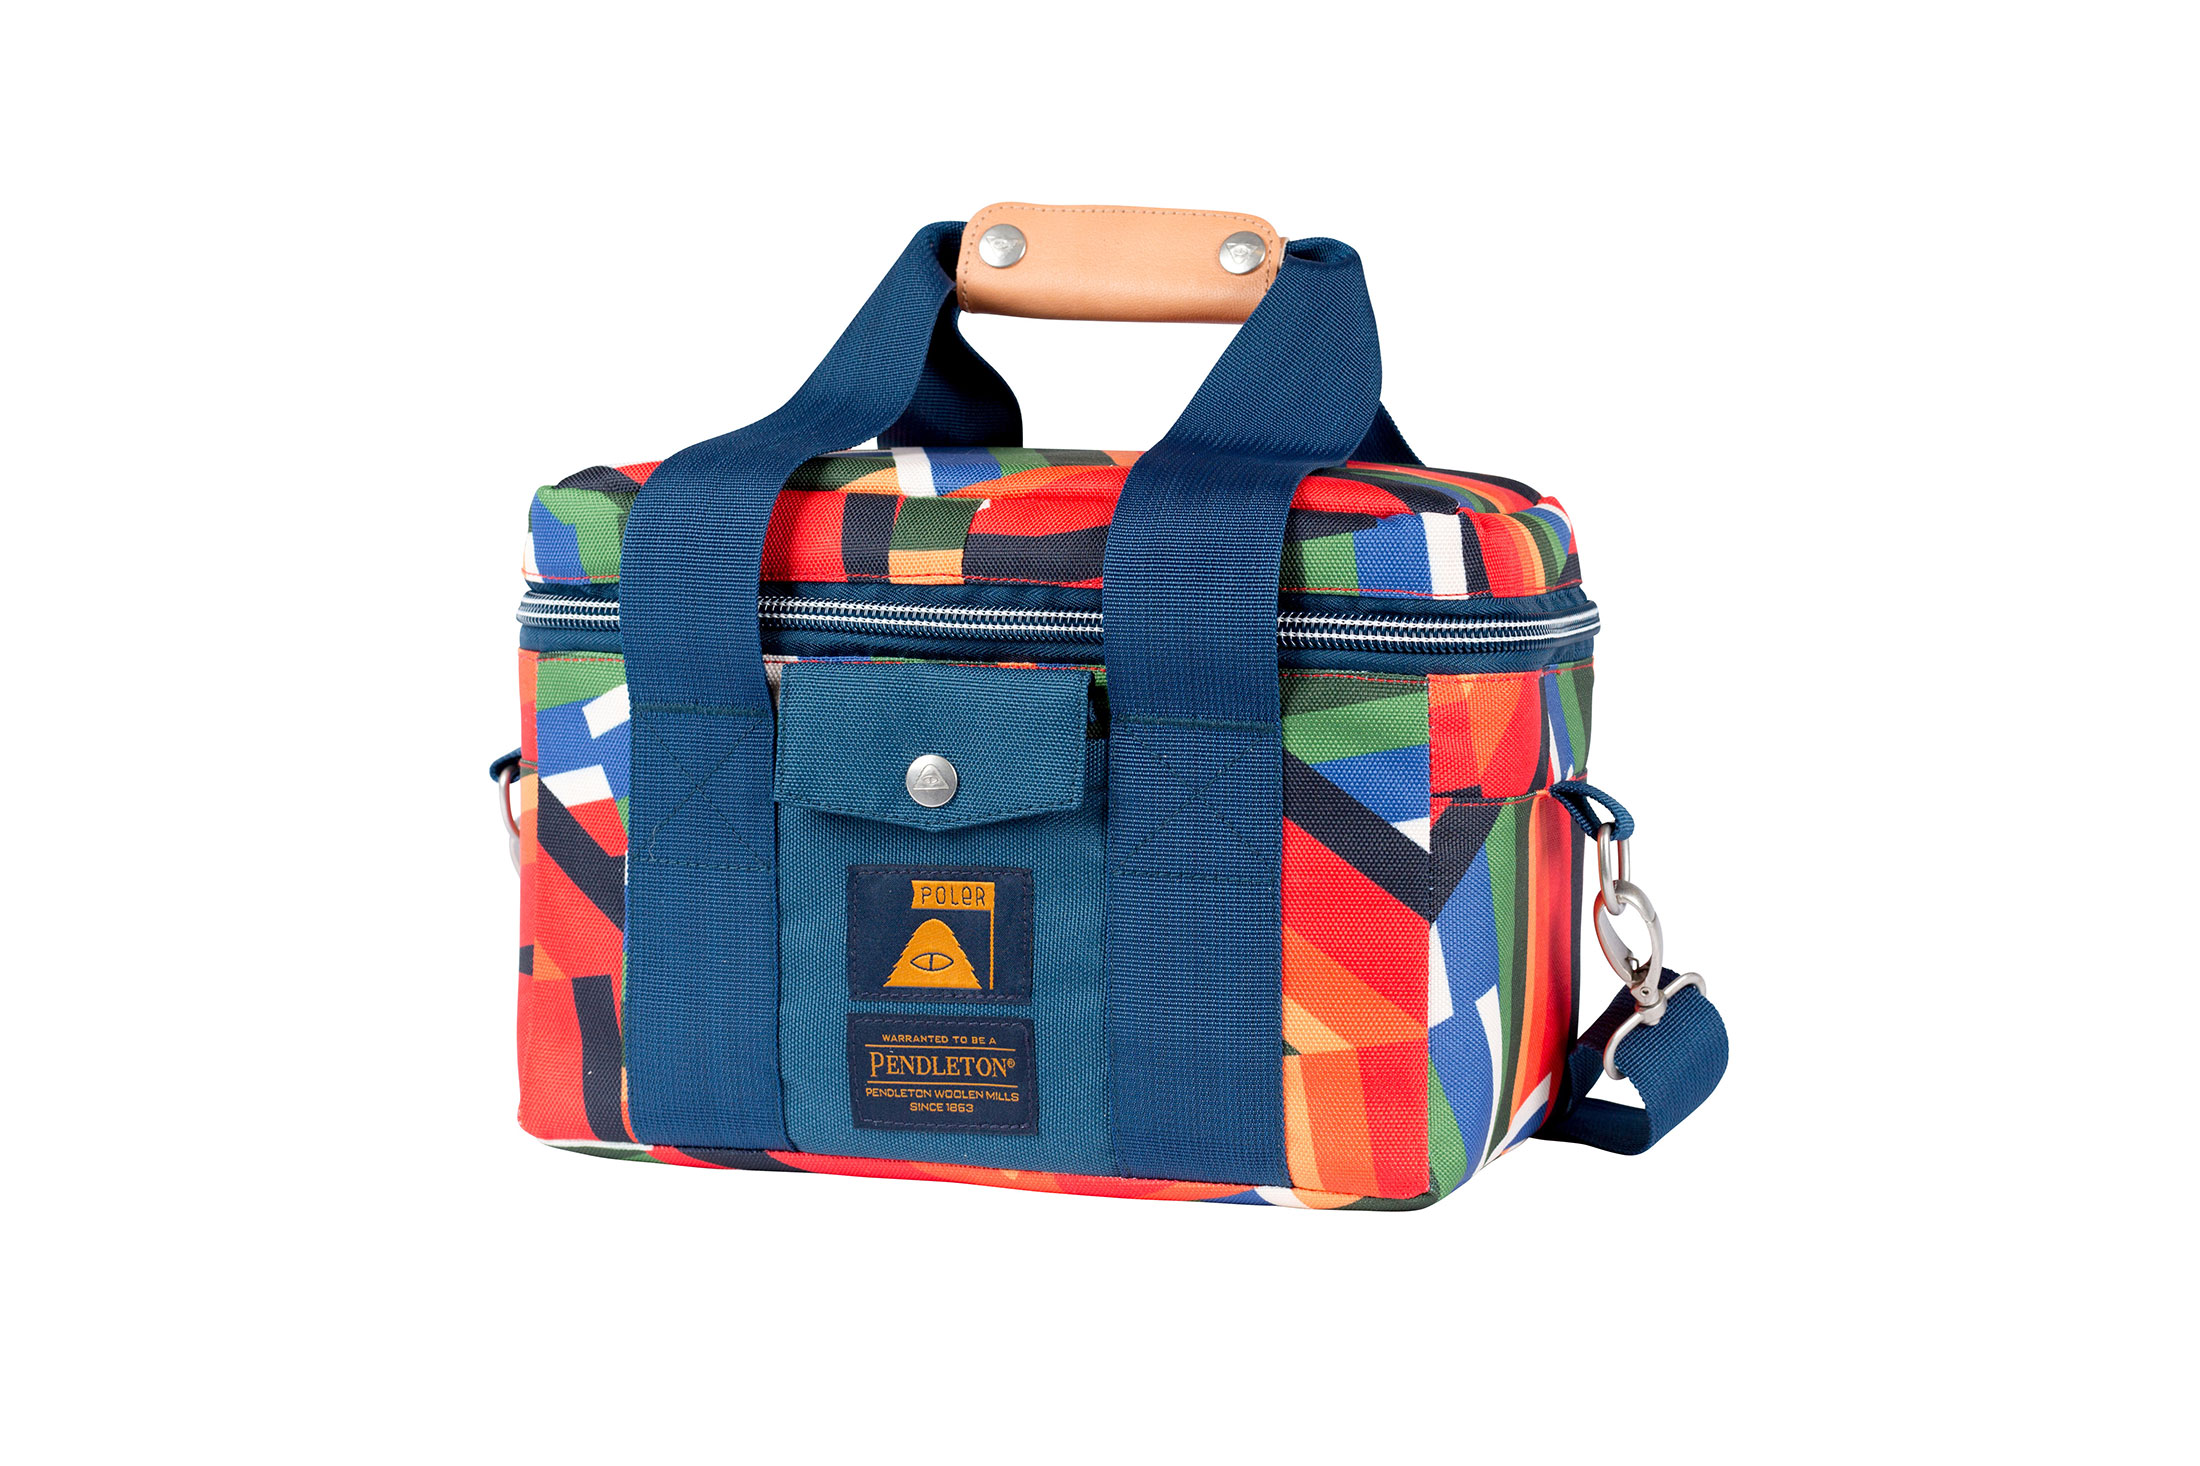 Poler x Pendleton 2016 Fall/Winter Collection camping essentials orange green red blue - 1762255